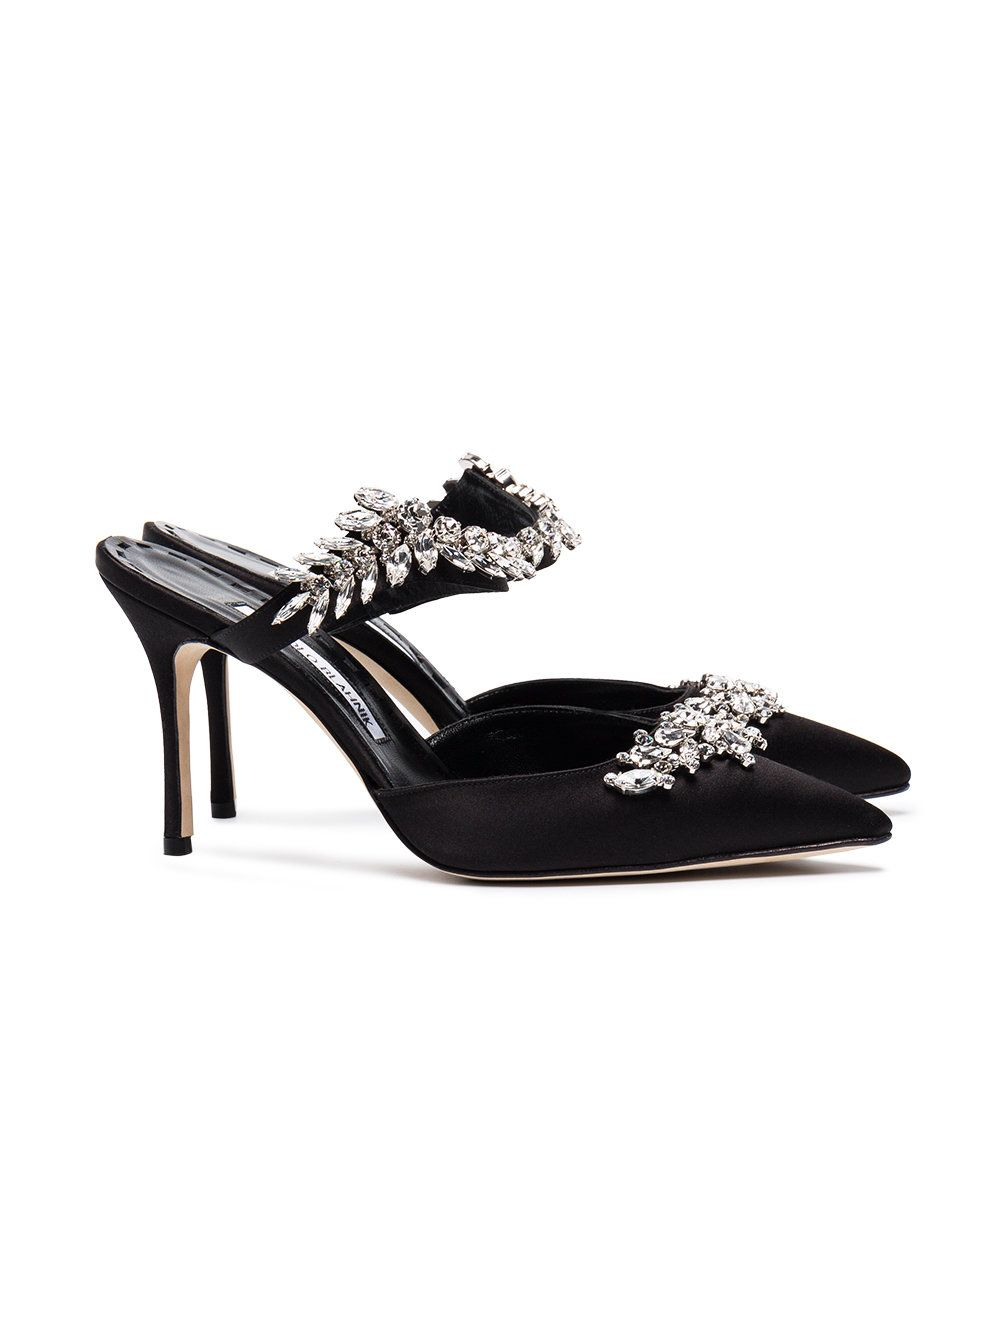 bbe8d2d93f Manolo Blahnik Black Satin Lurum Crystal 90 Mules - Farfetch Black Satin,  Manolo Blahnik Heels